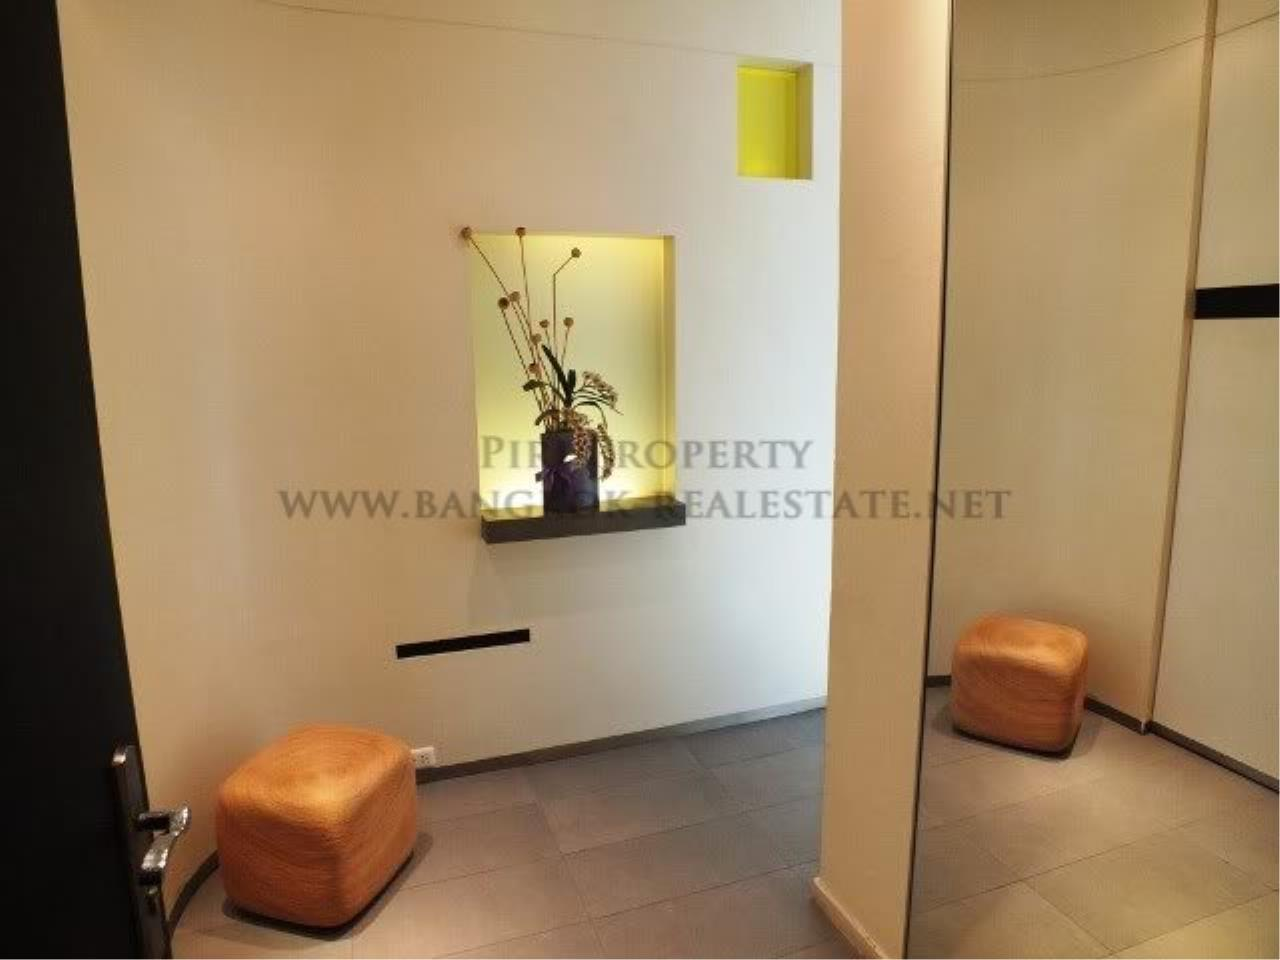 Piri Property Agency's AP Citismart for Rent - Nice 2 Bedroom right next to the BTS Asoke 2